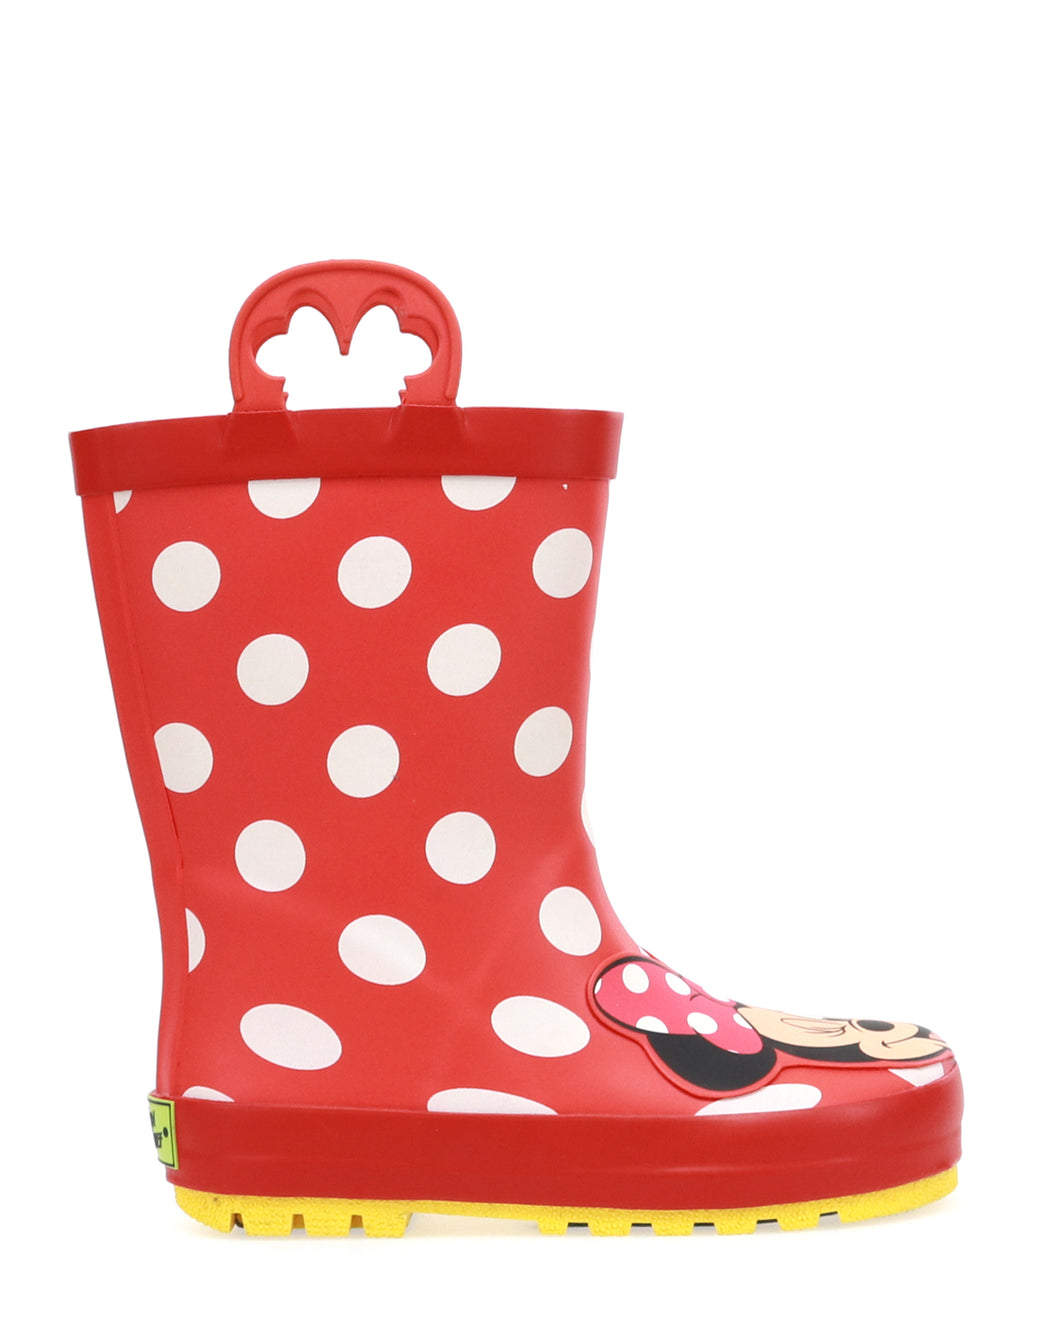 Kids Minnie Mouse Rain Boots - Red